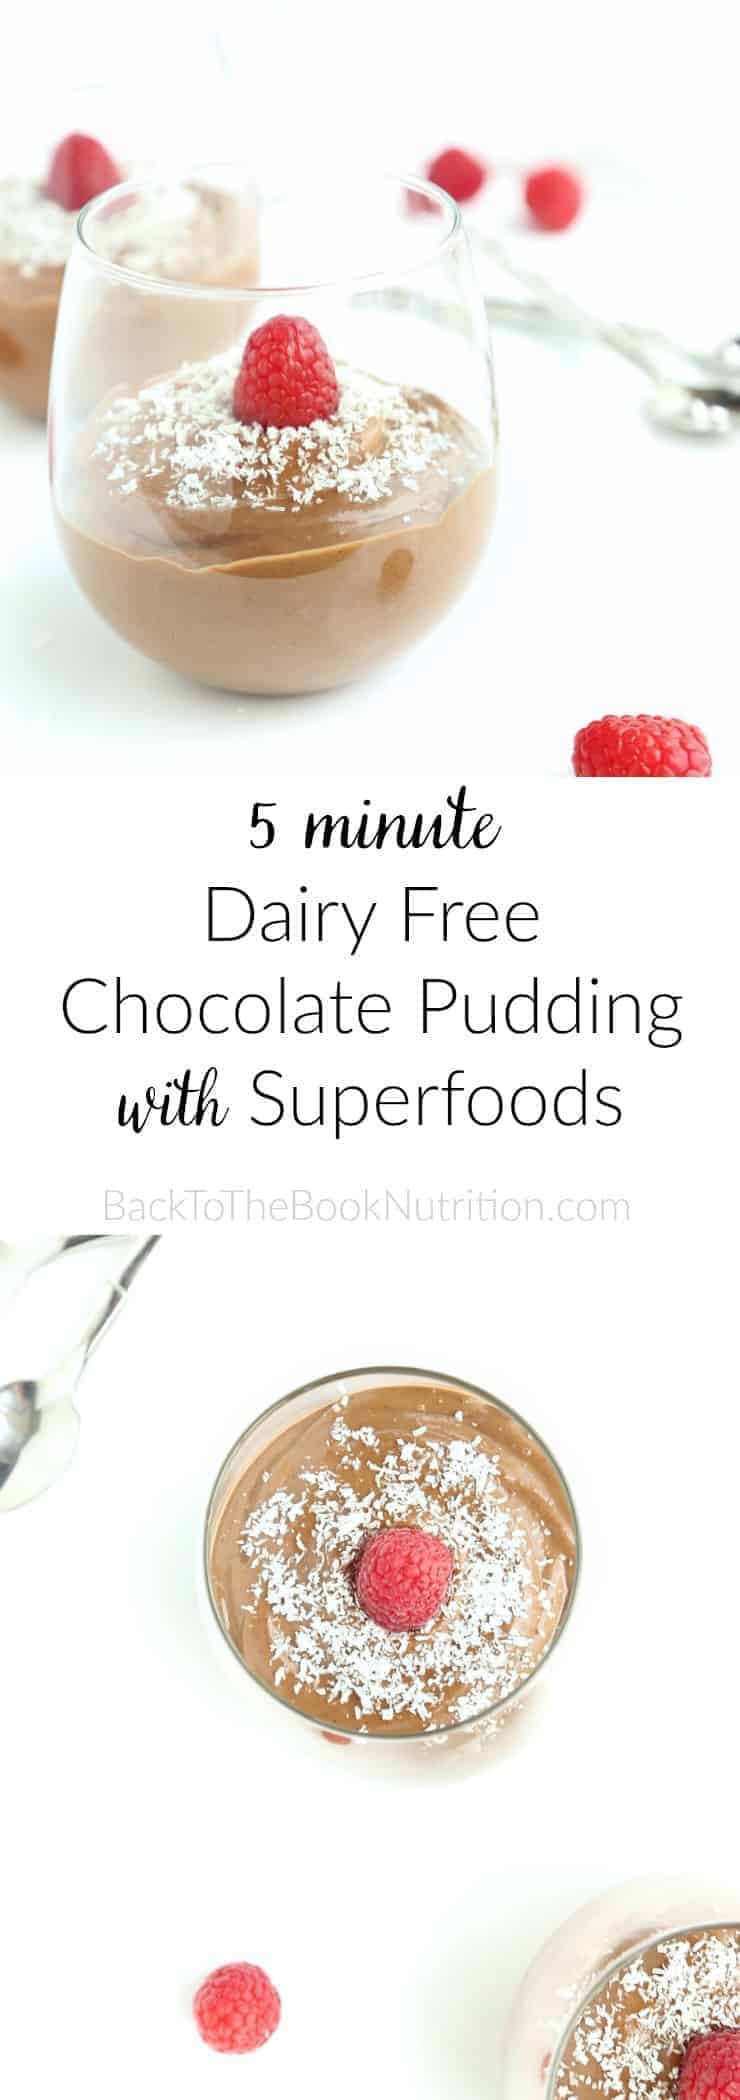 5 minute Dairy Free Chocolate Pudding with superfoods! Refined sugar free, gluten free, peanut free, full of rich chocolate flavor! | Back To The Book Nutrition